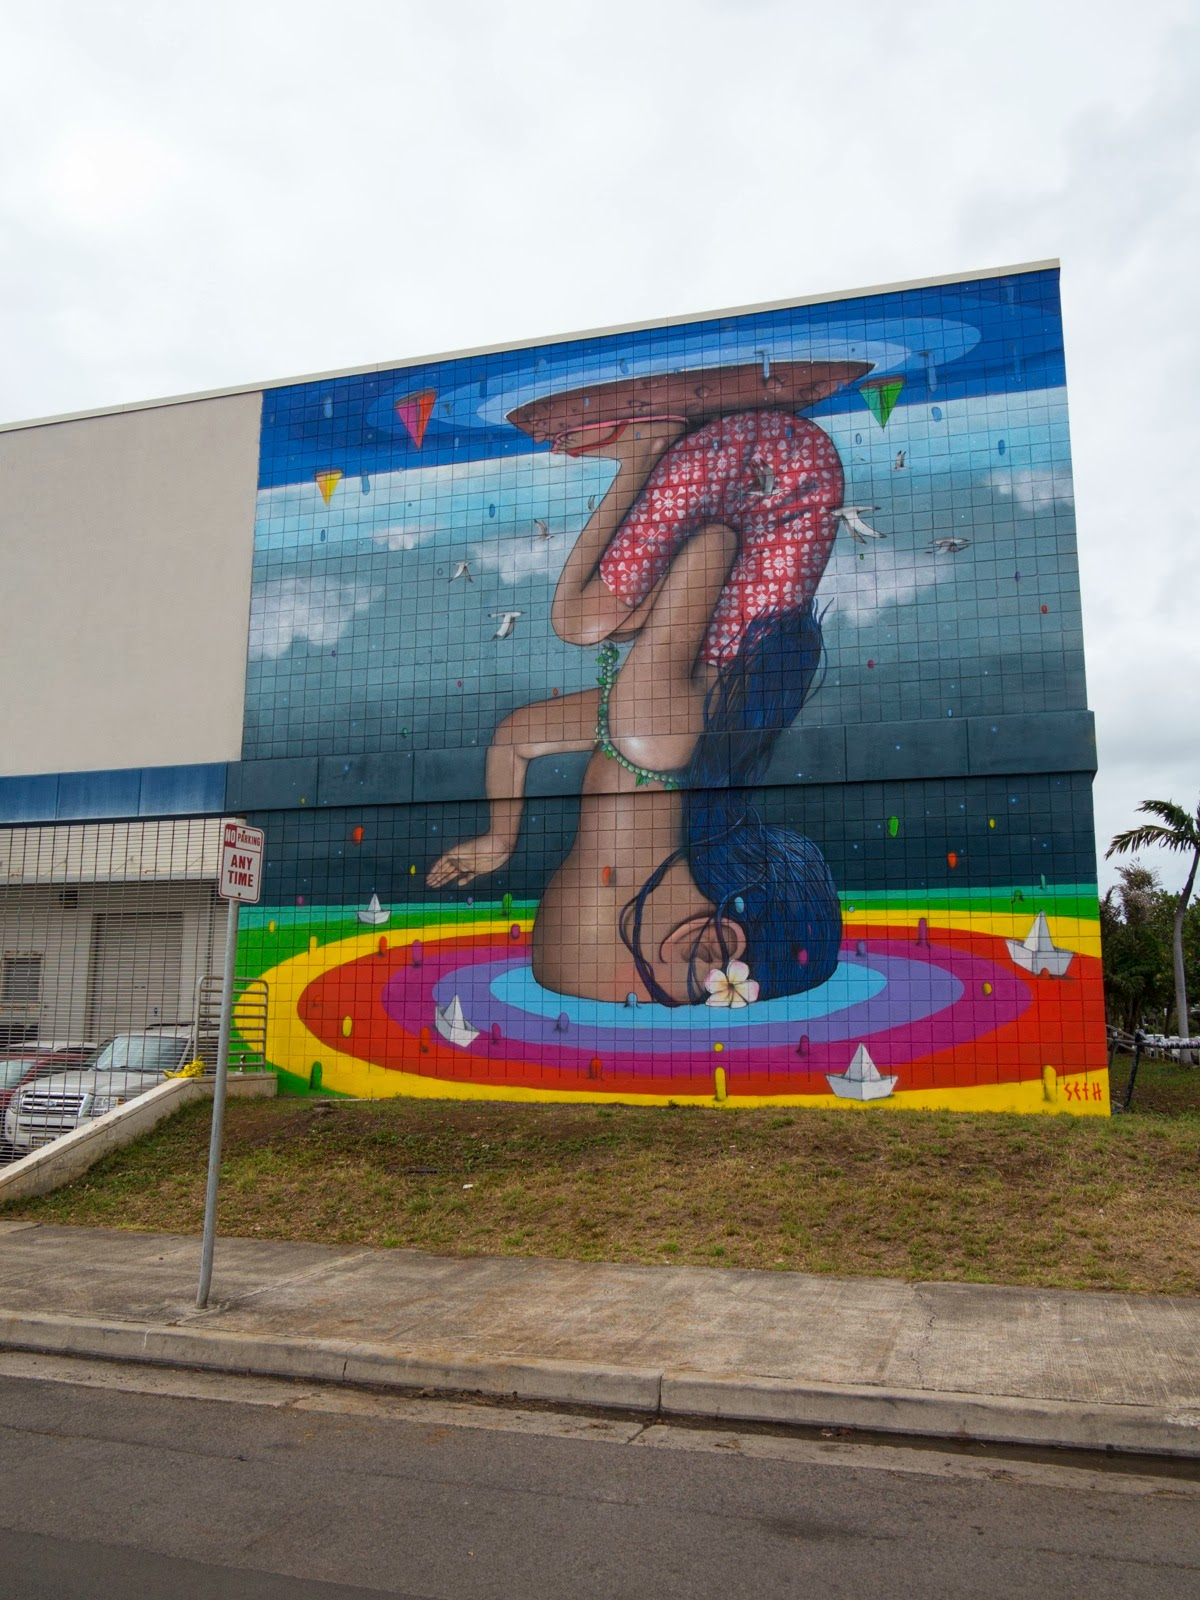 We continue our ongoing coverage of the excellent POW! WOW! Street Art Festival with Seth GlobePainter and his newest mural on the streets of Honolulu, Hawaii. 1